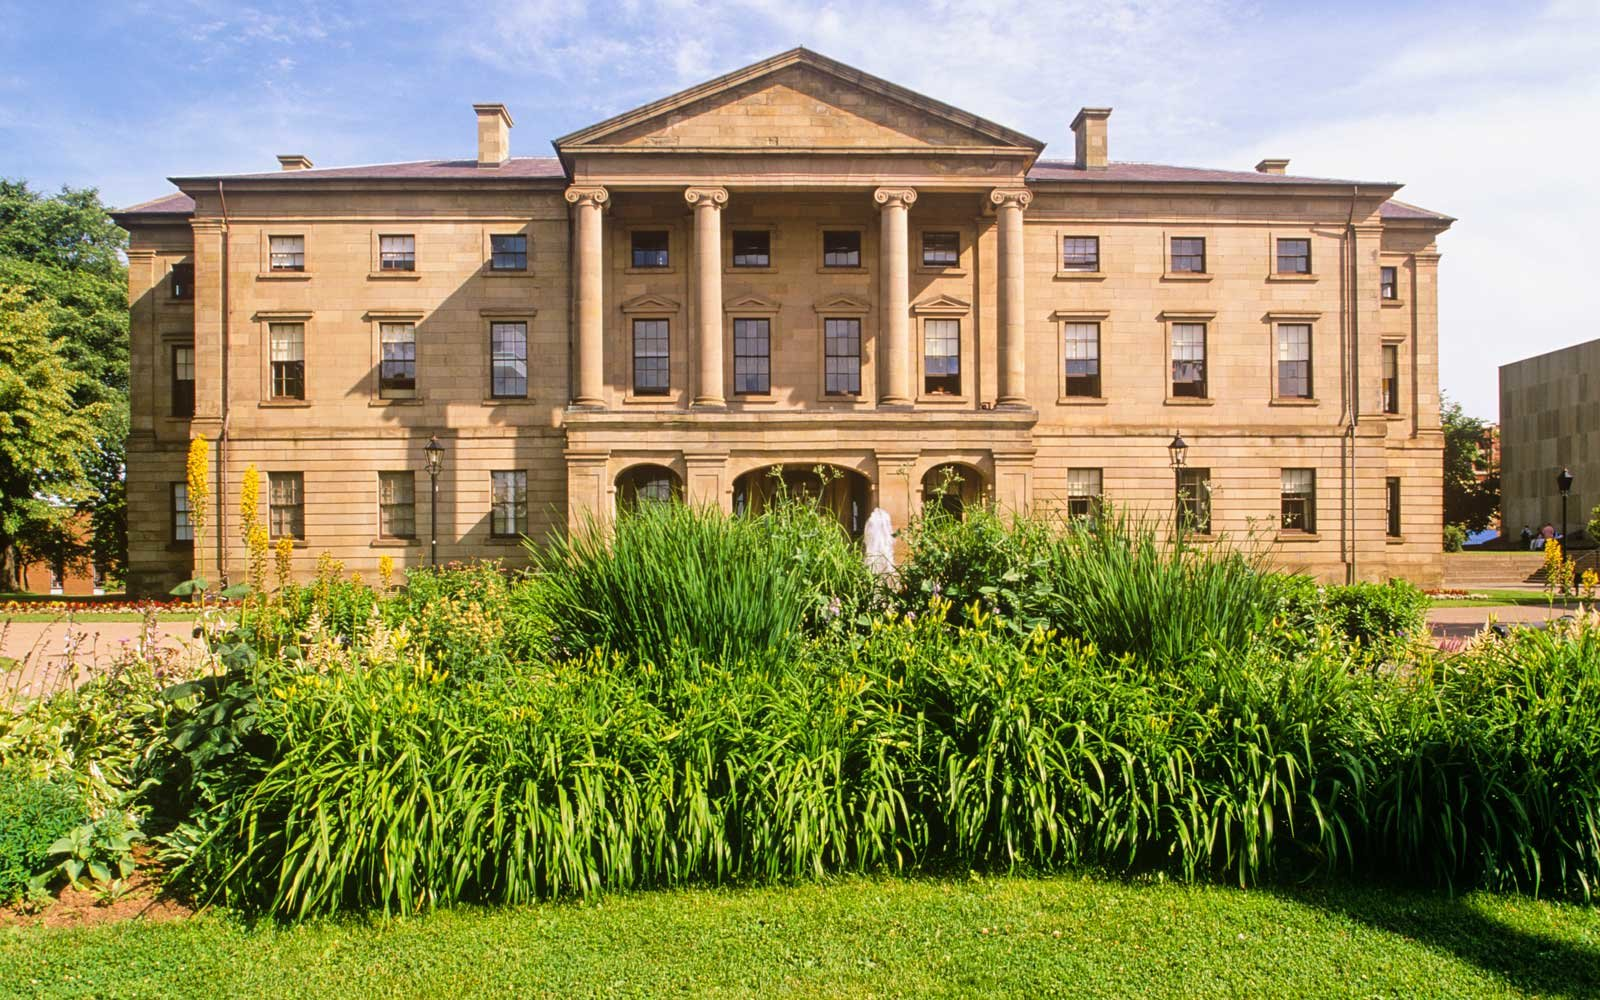 Province House National Historic Site, Charlottetown, Prince Edward Island, Canada